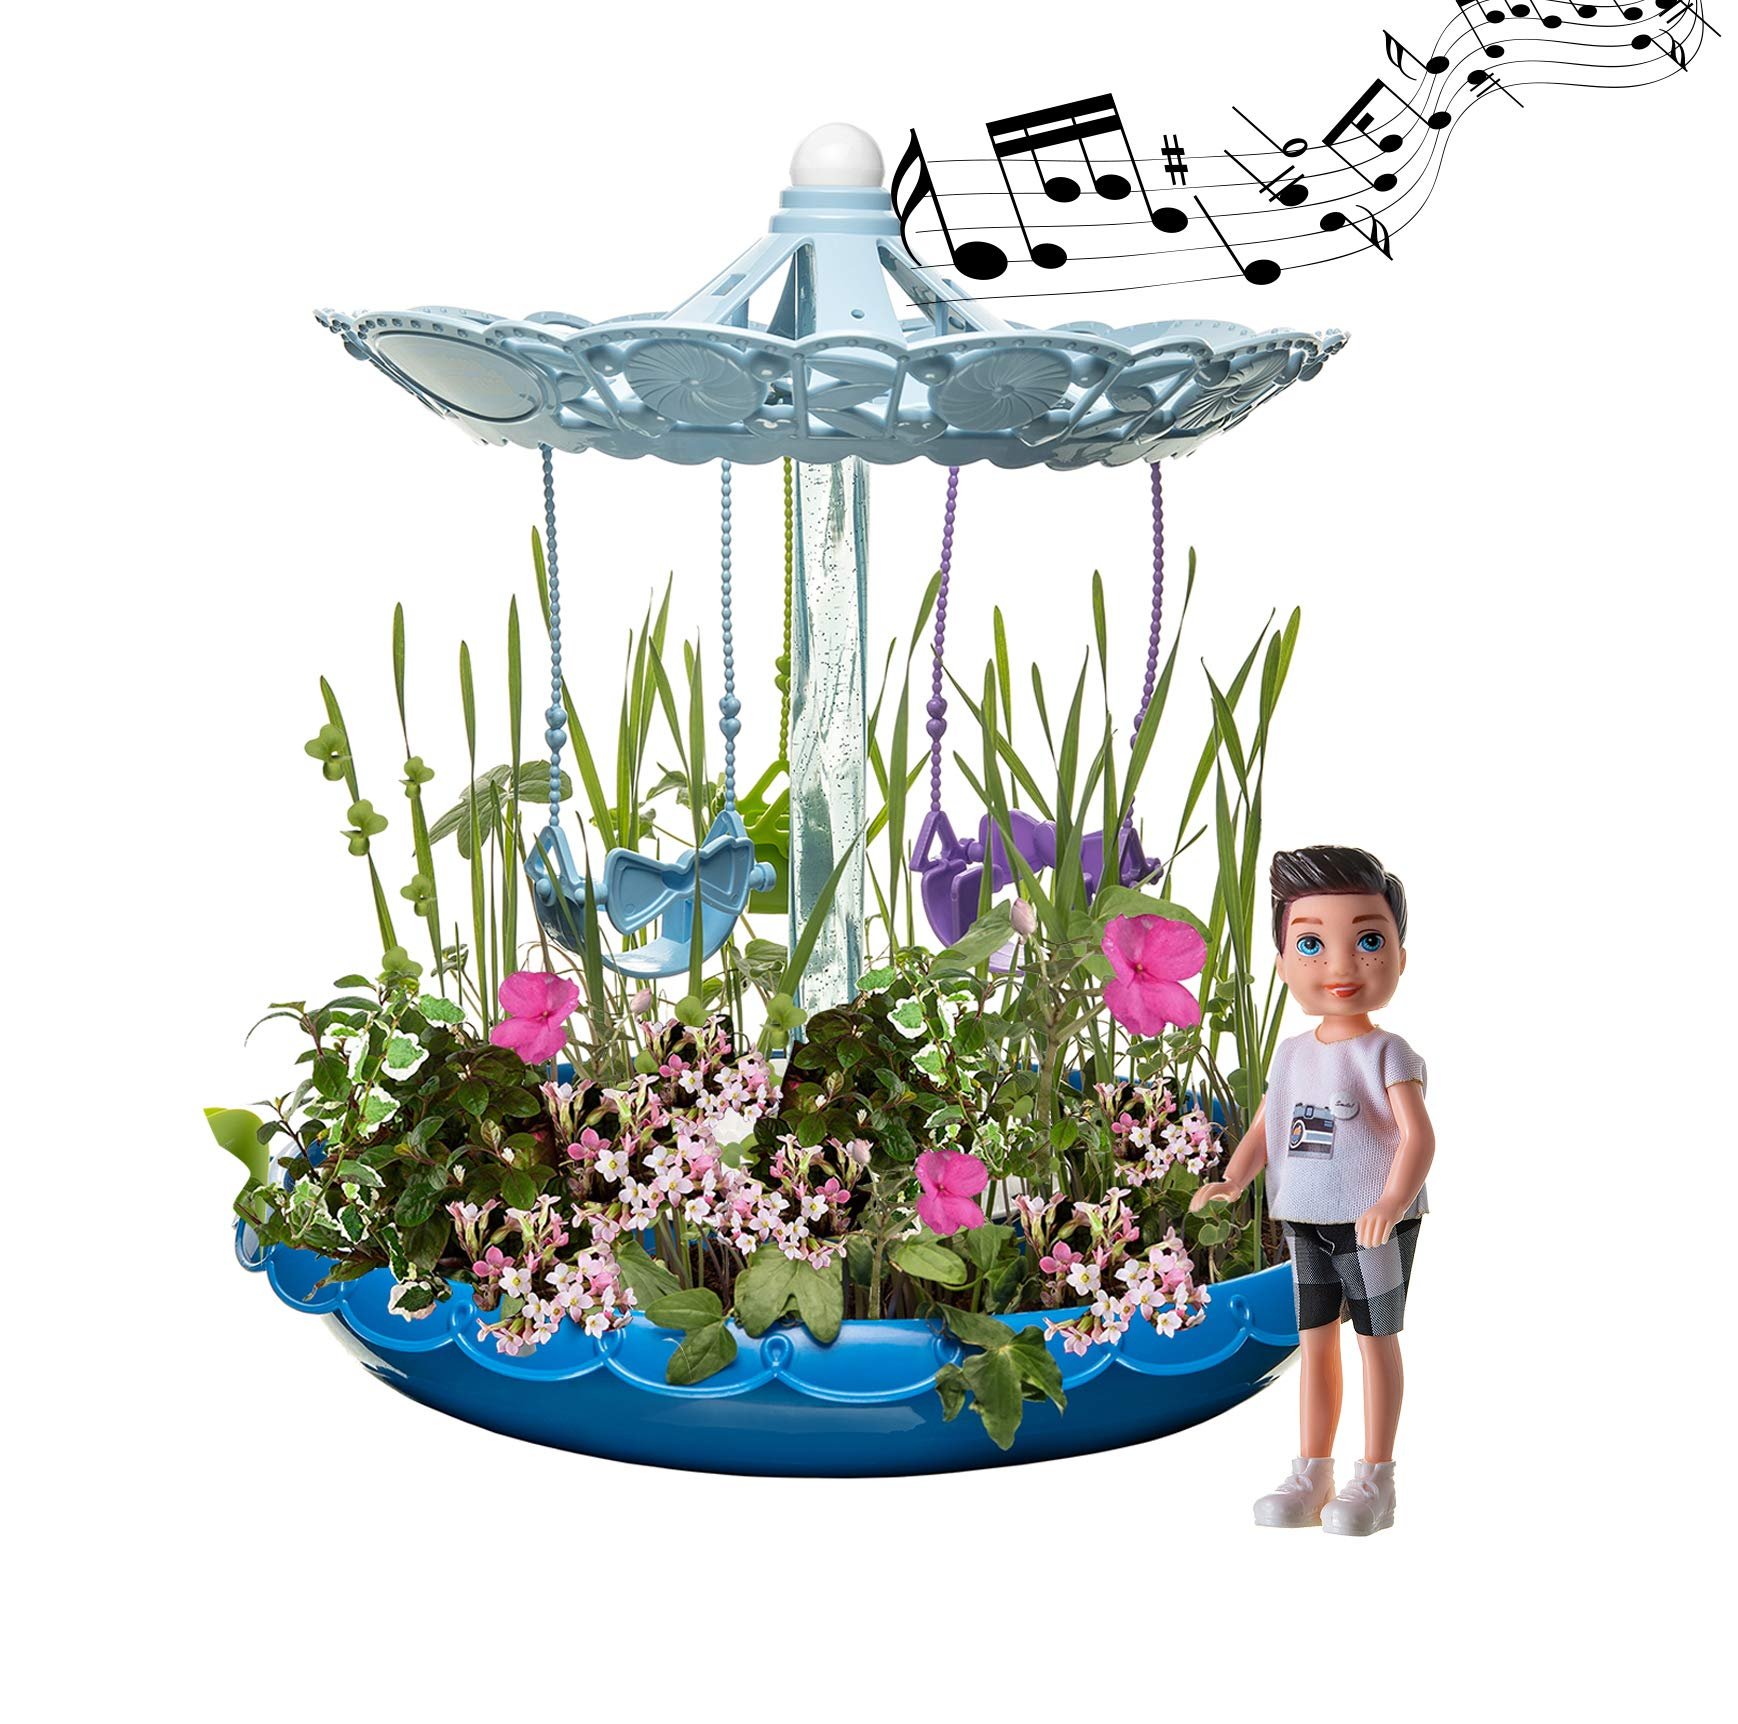 Kids Garden Set for Boys and Girls 3 - 10 Years Old - Best Fairy Gardening Gift - Grow Magic Flowers and Plants Indoor - Montessori Toy for Toddlers (Blue)